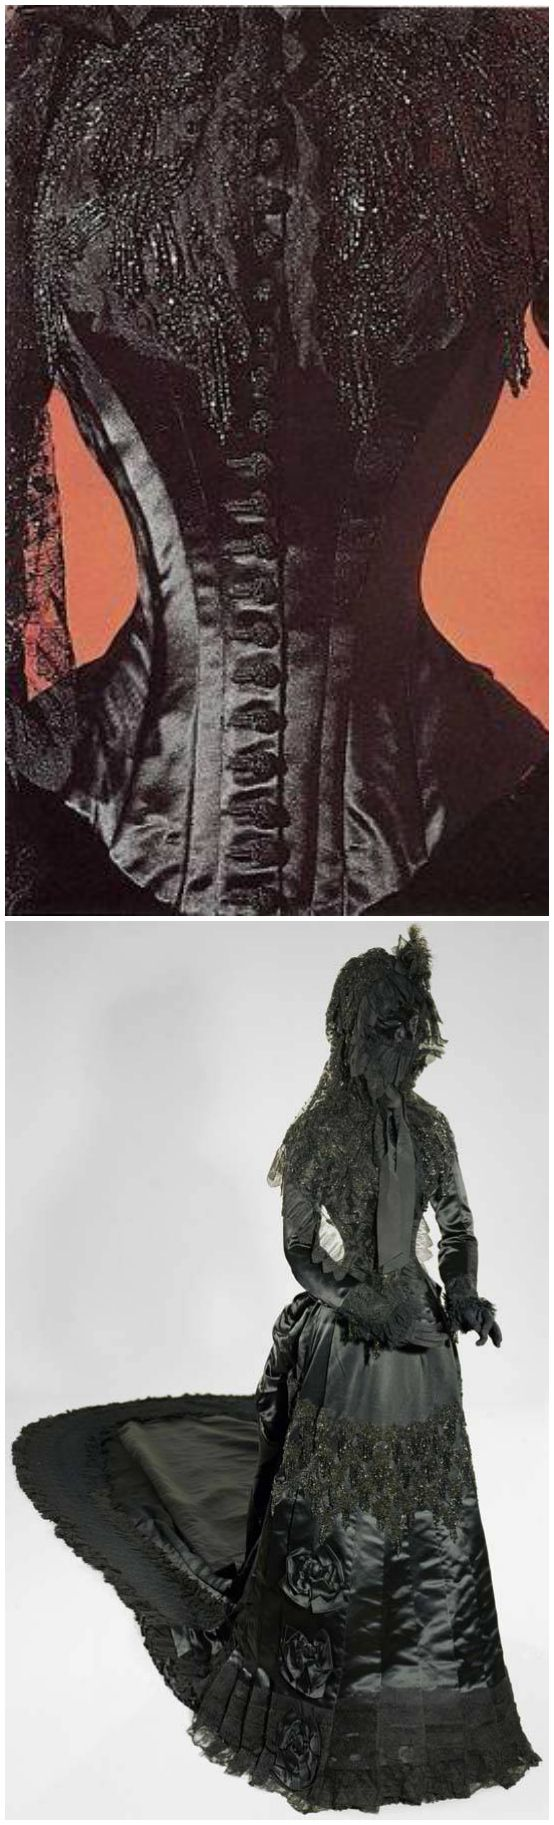 Formal court mourning dress of Empress Elisabeth of Austria, made by Fanni Scheiner, dated after 1877. Kunsthistorisches Museum Wien / Wagenburg und Monturdepot. Photos: (Top): Joshua Greene; (Bottom): Kunsthistorisches Museum Wien. Bodice of black satin trimmed with Chantilly lace and jet bead embroidery, black satin skirt with bustle and train, black lace bonnet and black velvet veil-mask edged with black lace.